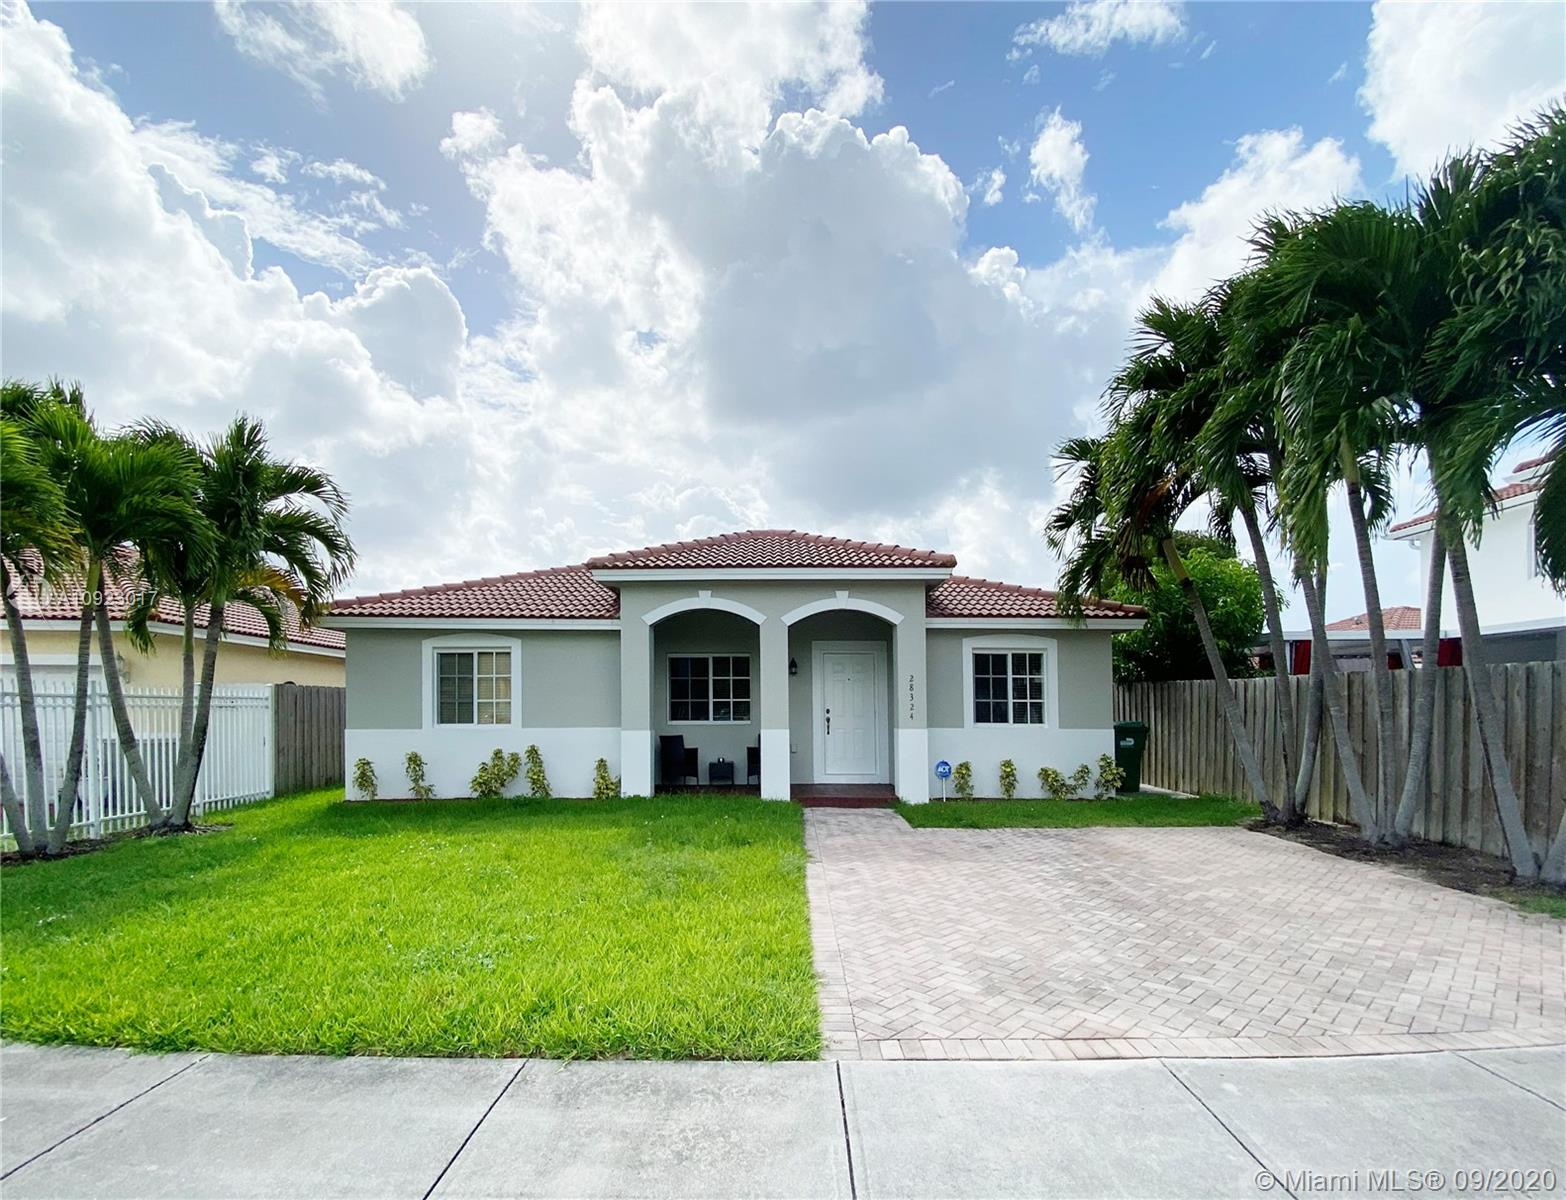 28324 SW 133rd Ave Property Photo - Homestead, FL real estate listing